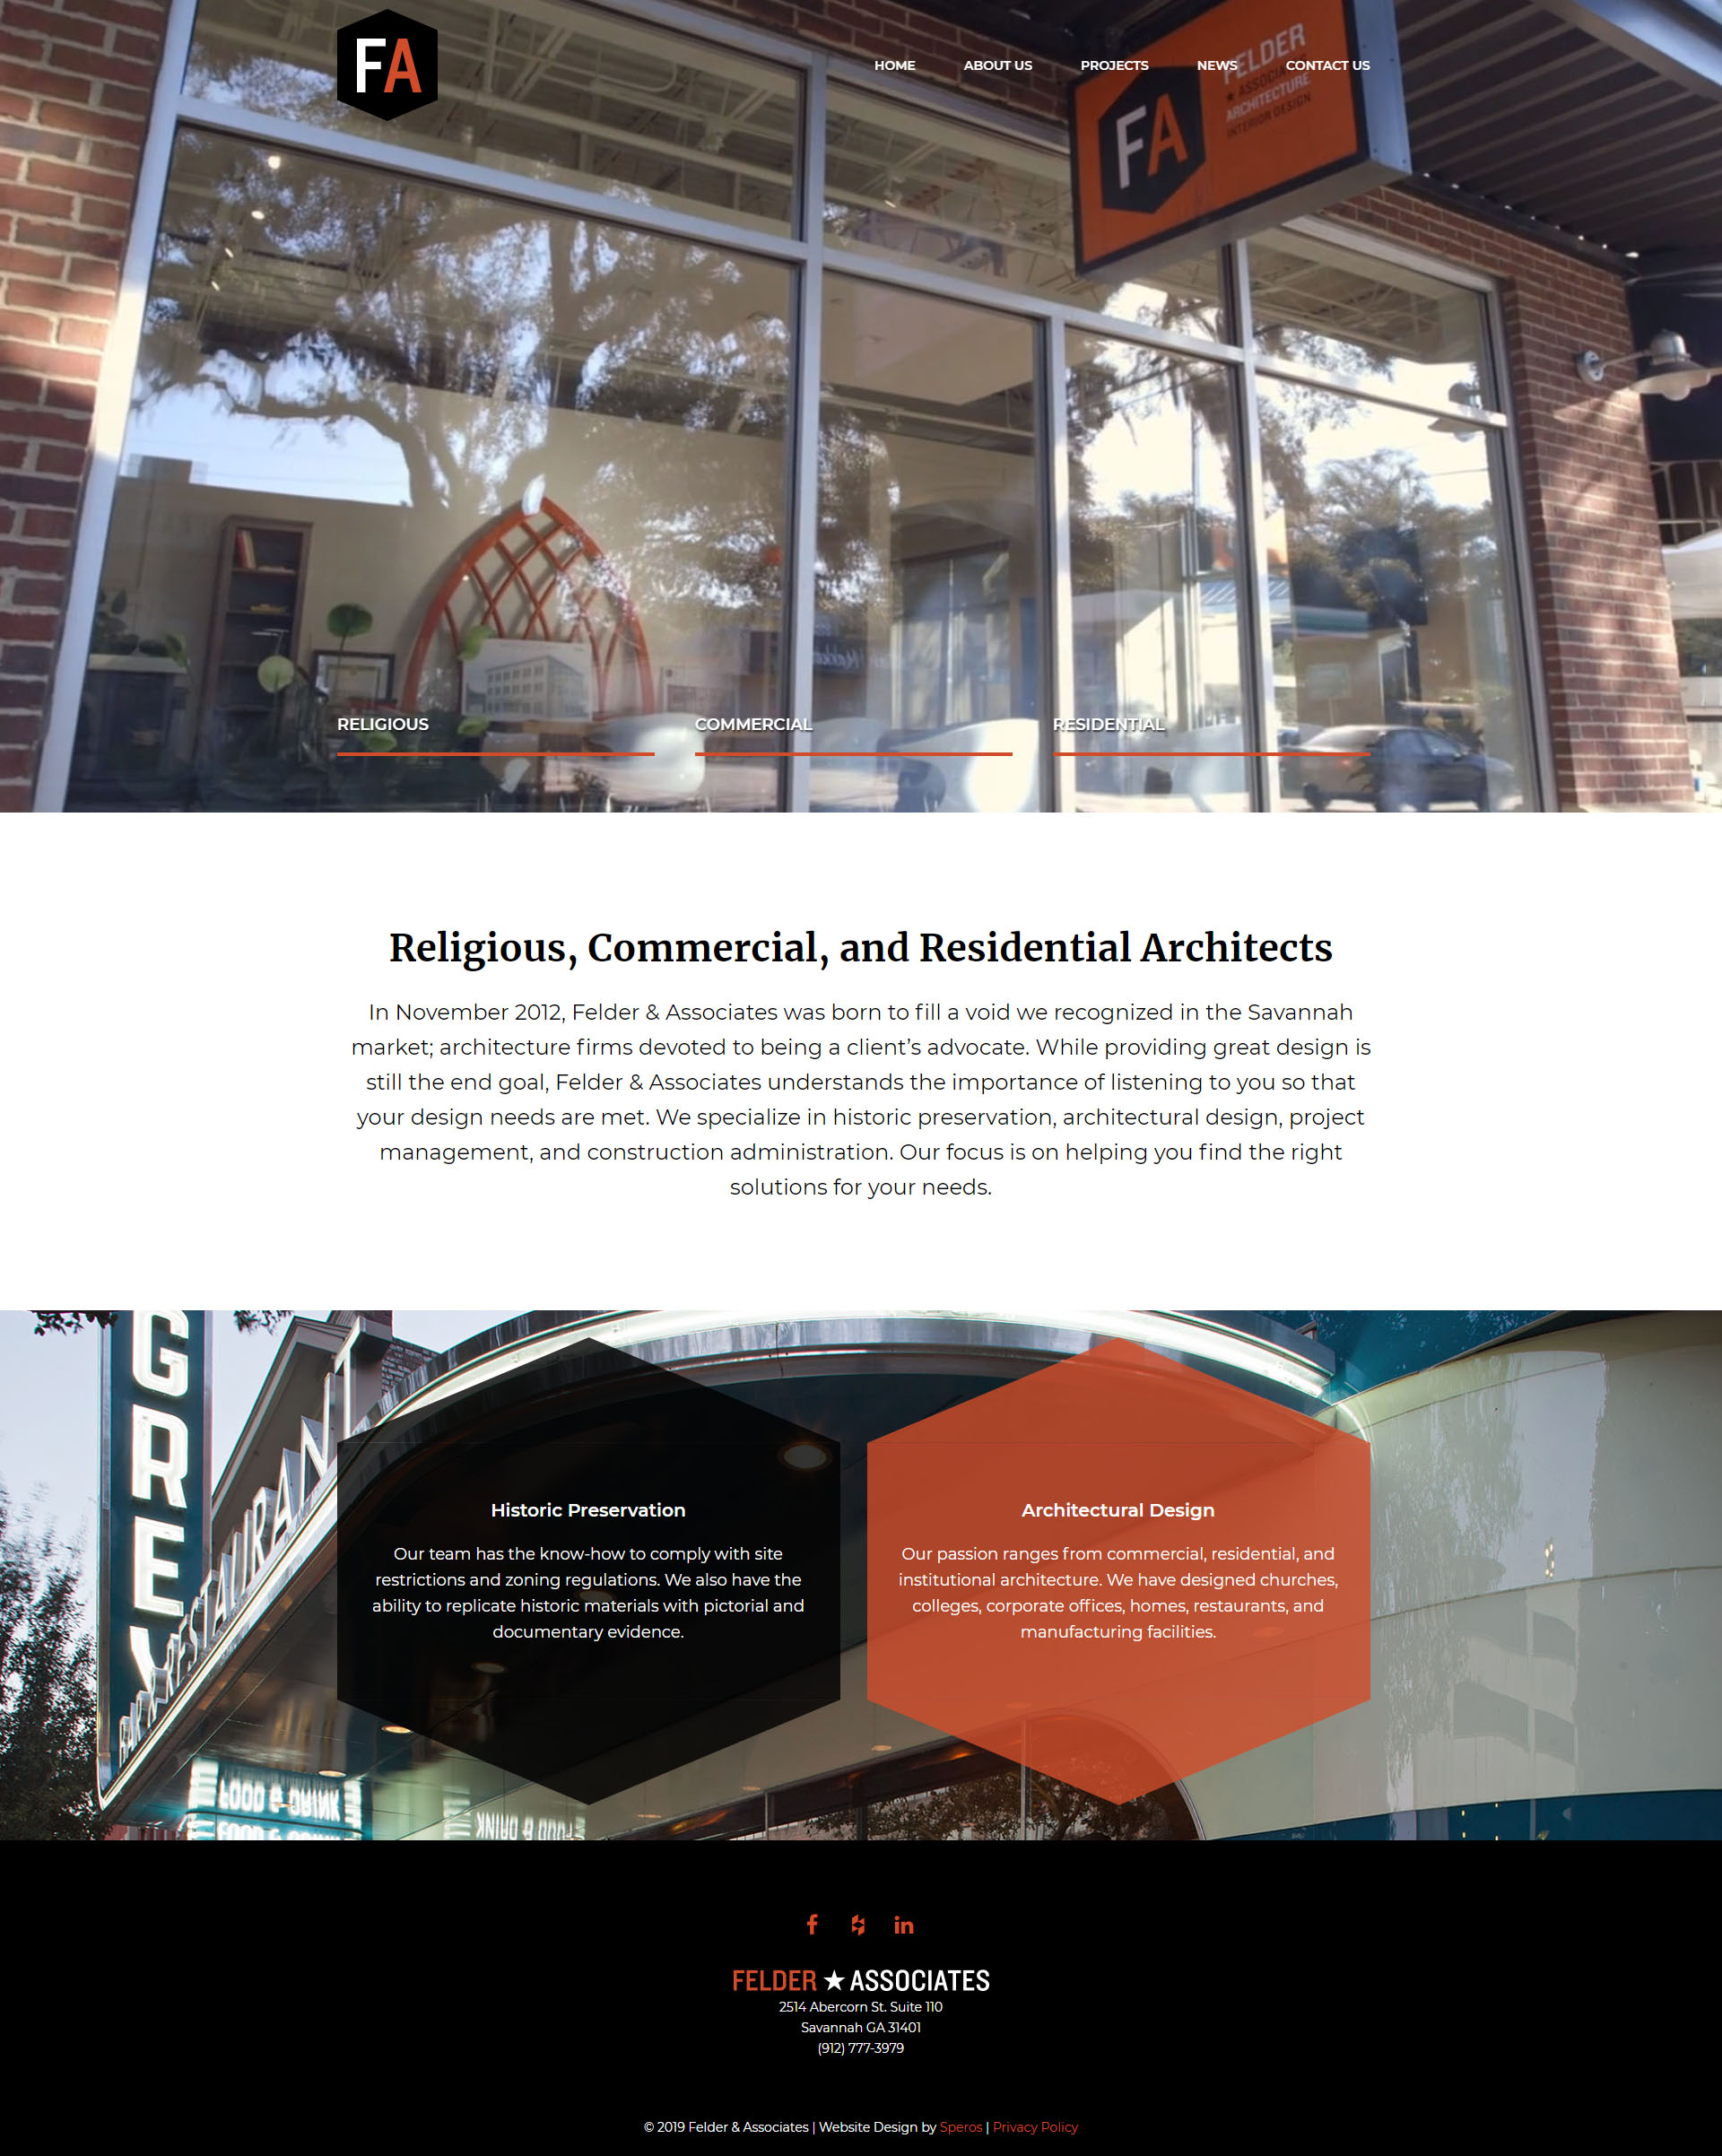 Felder and Associates website homepage design - Speros - Savannah, GA